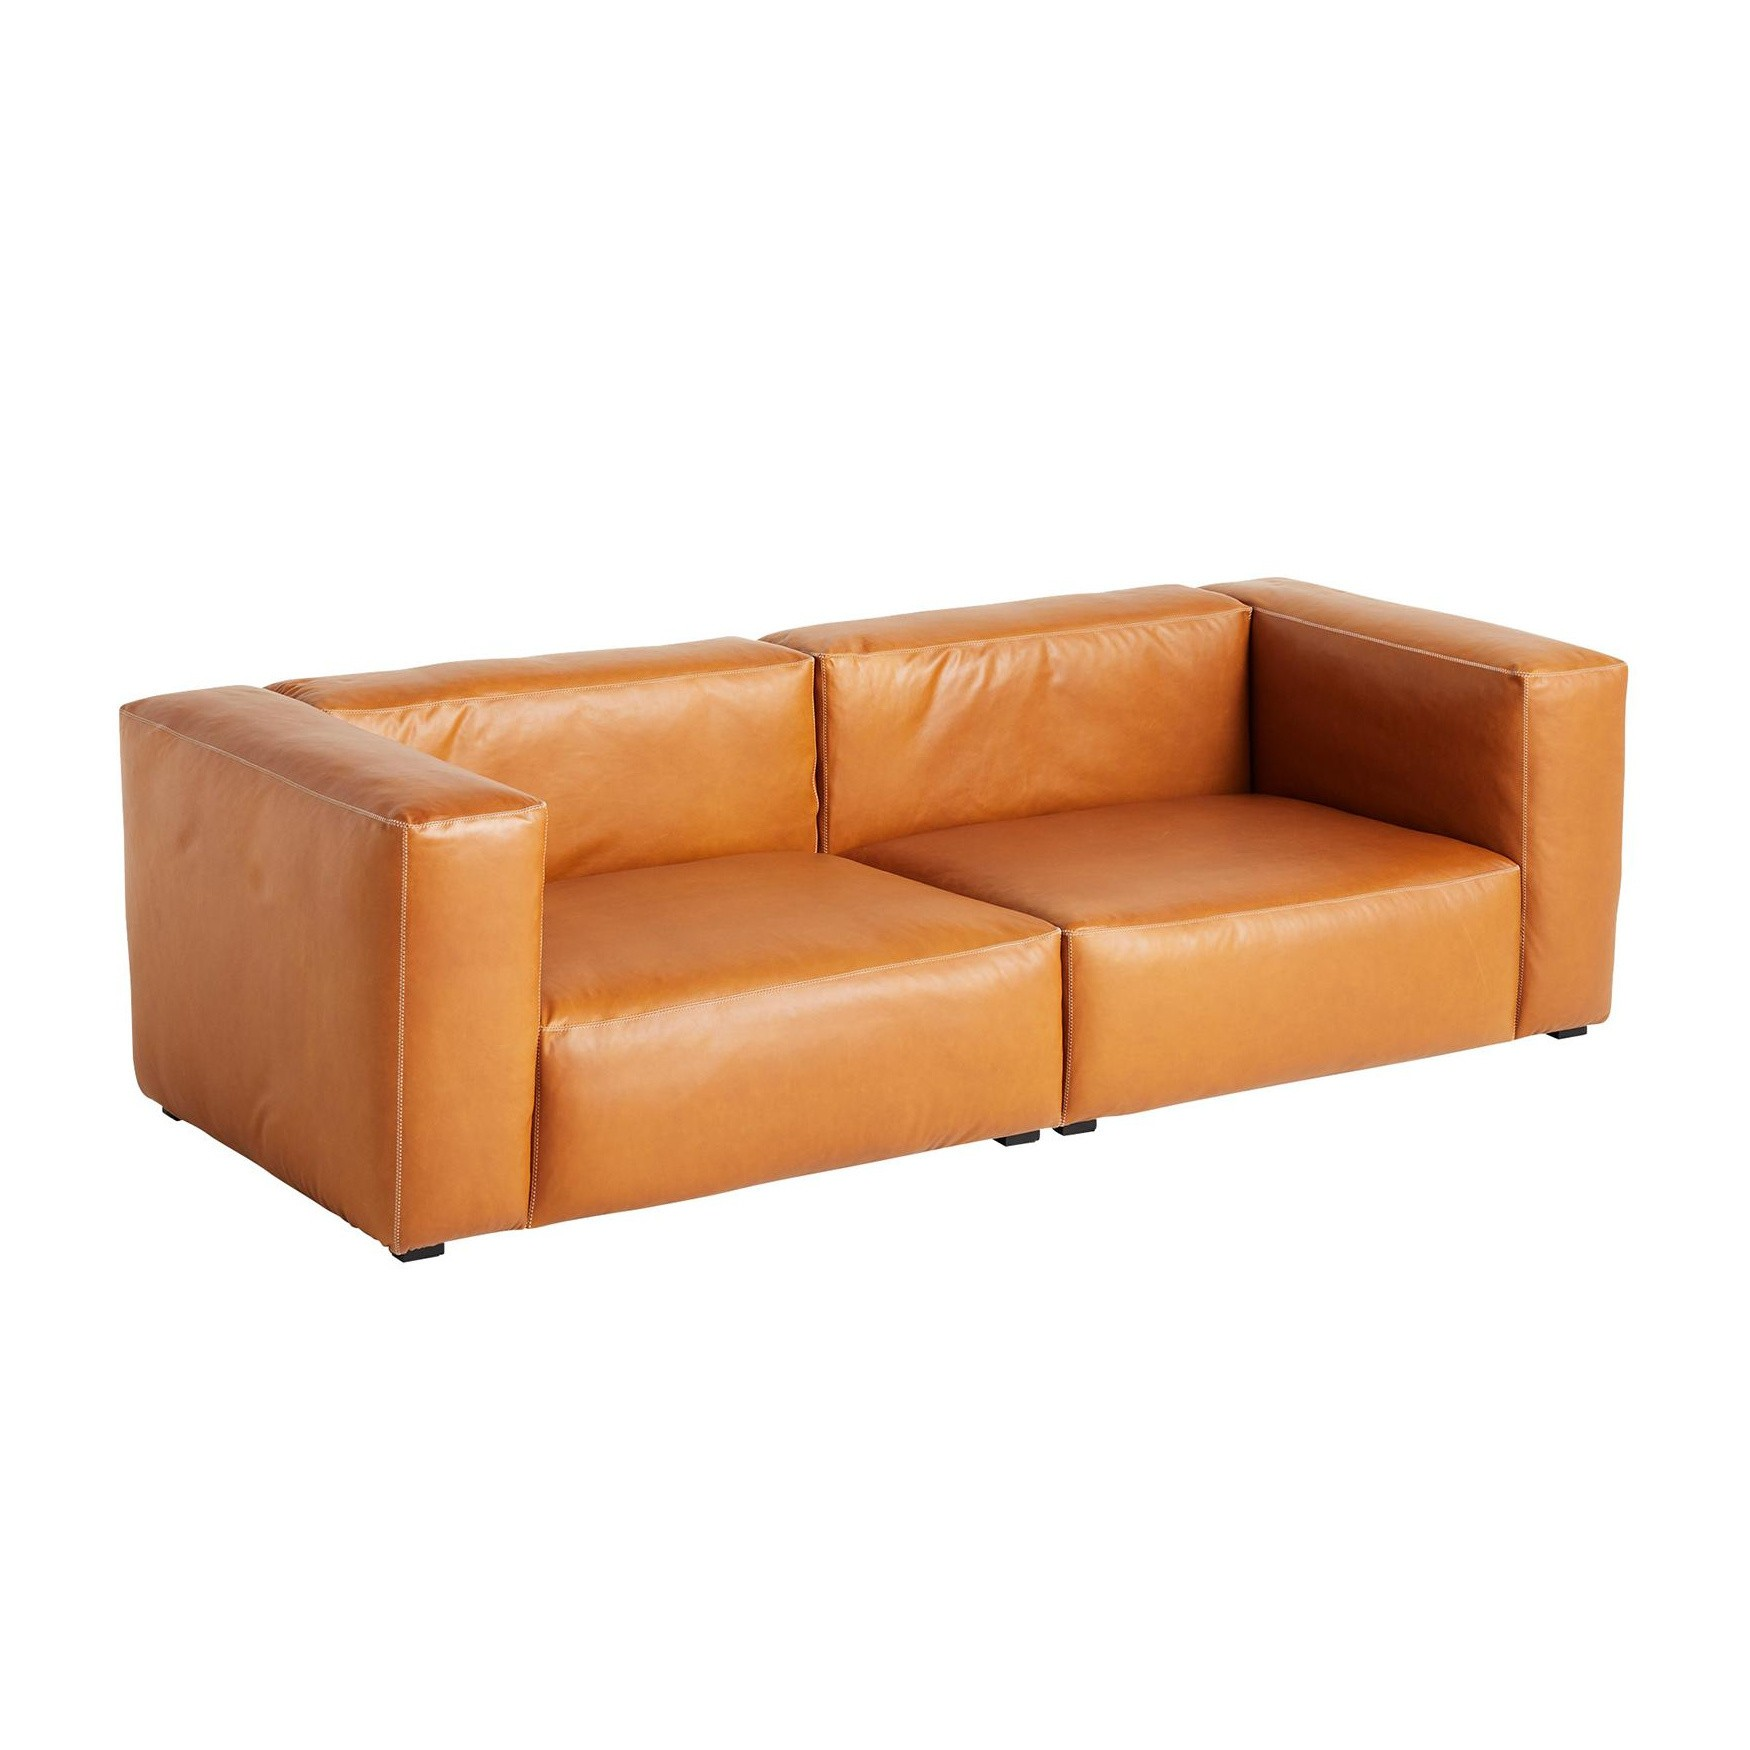 - HAY Mags Soft 2,5 Seater Sofa Leather 238x103.5x67cm AmbienteDirect